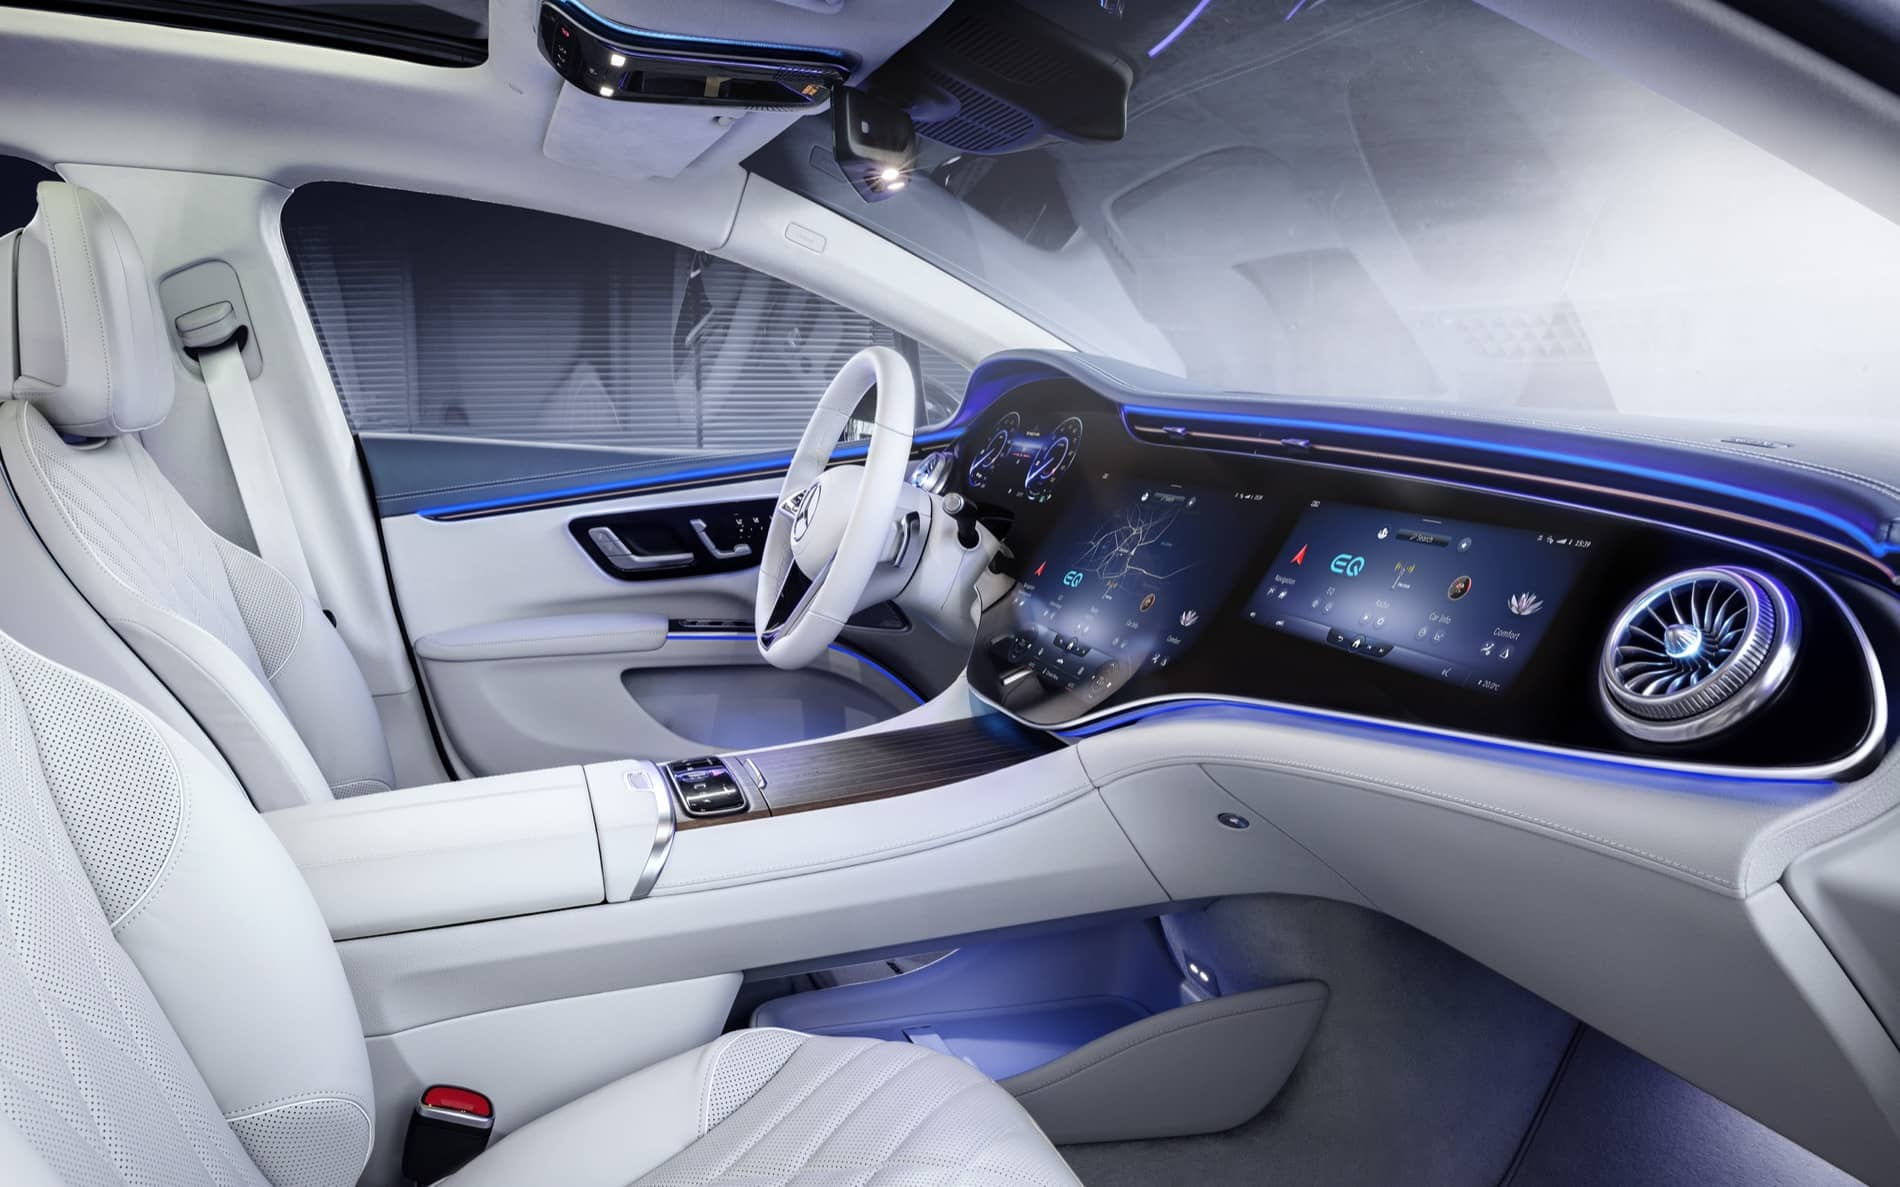 Mercedes-EQ, EQS, Interieur, MBUX HyperscreenMercedes-EQ, EQS, Interior, MBUX Hyperscreen